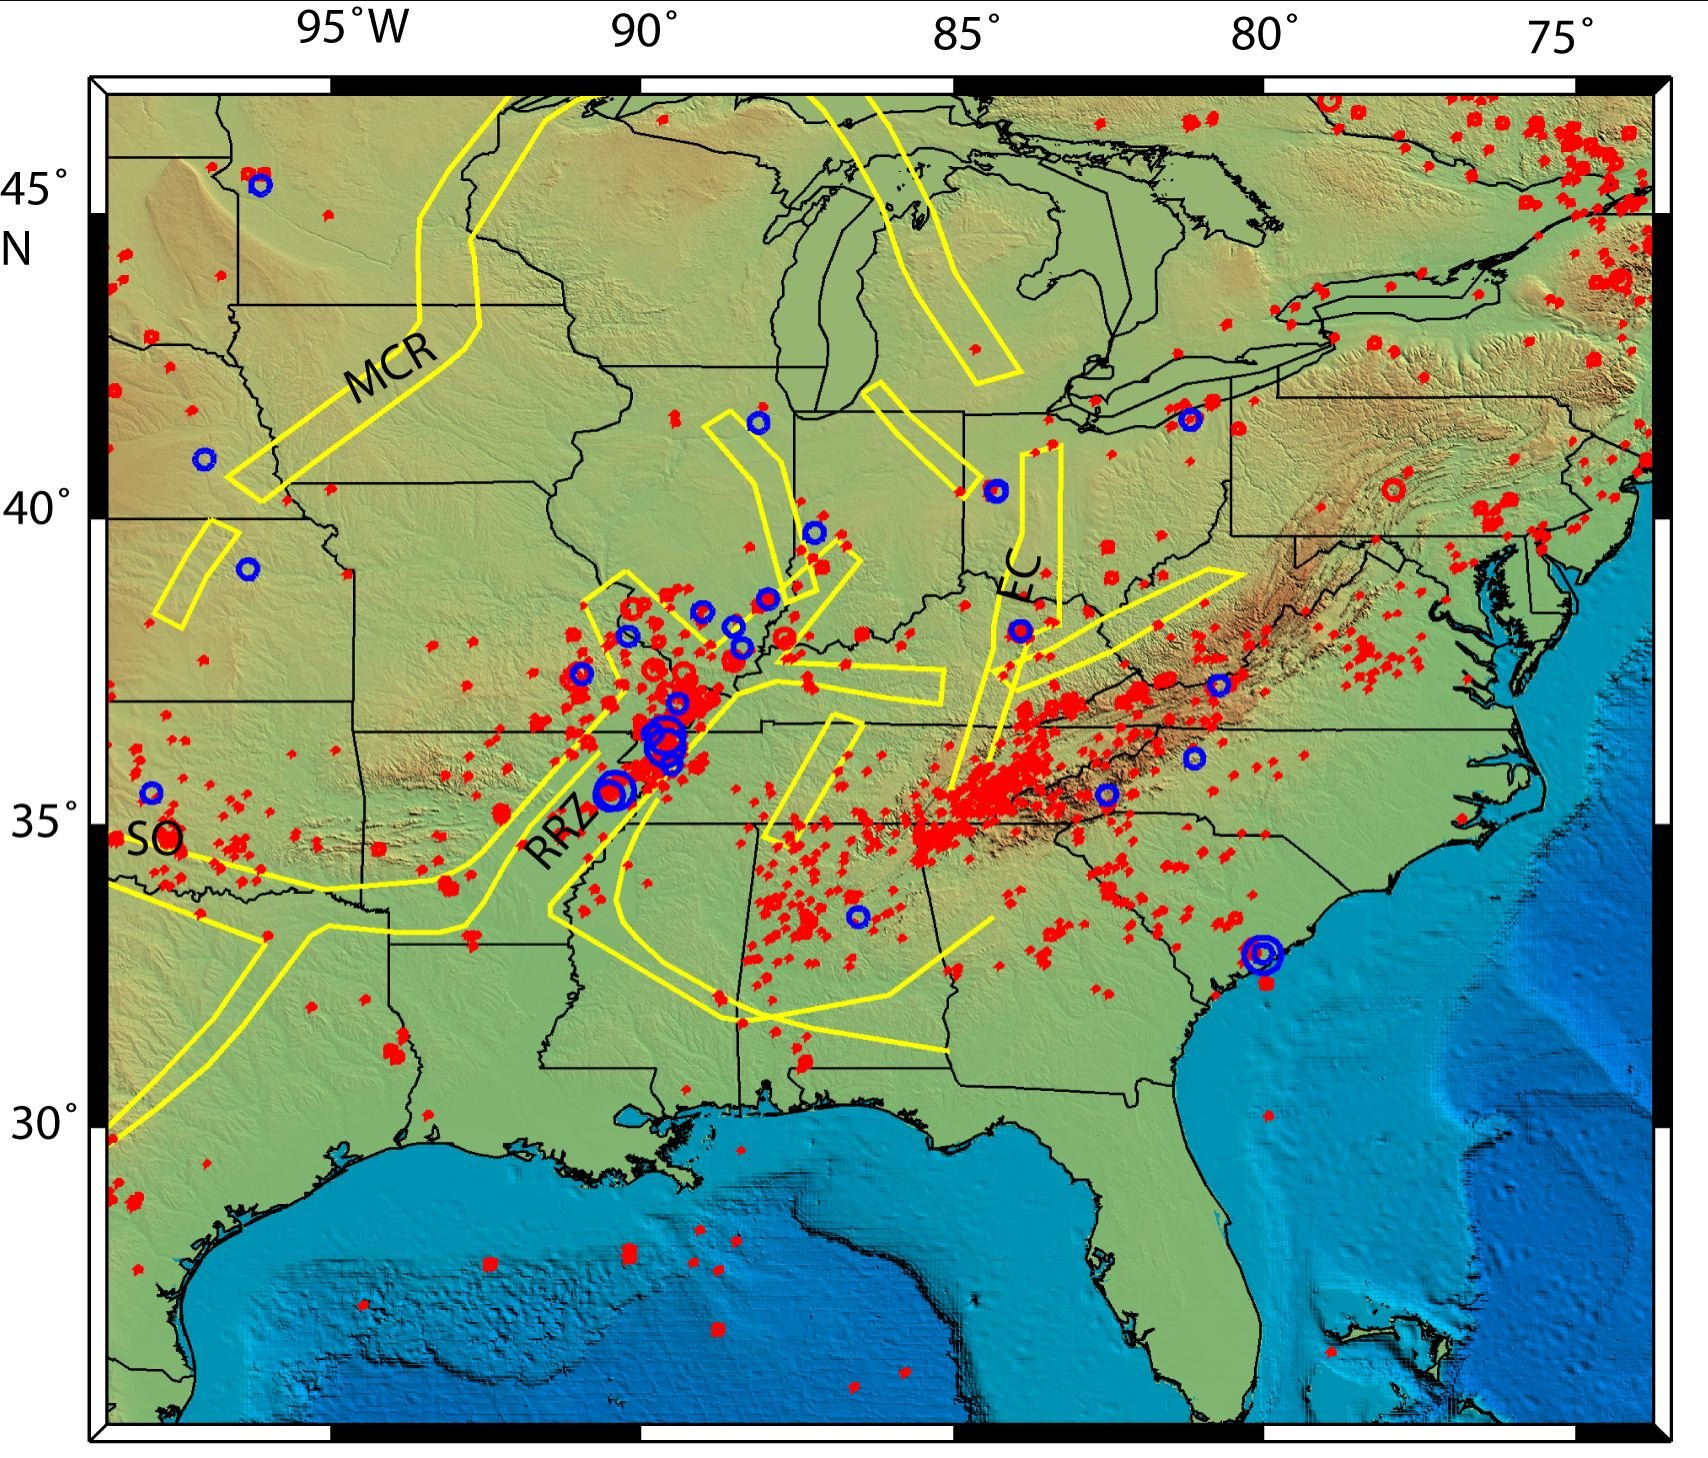 New Madrid Fault Zone from Northwestern University